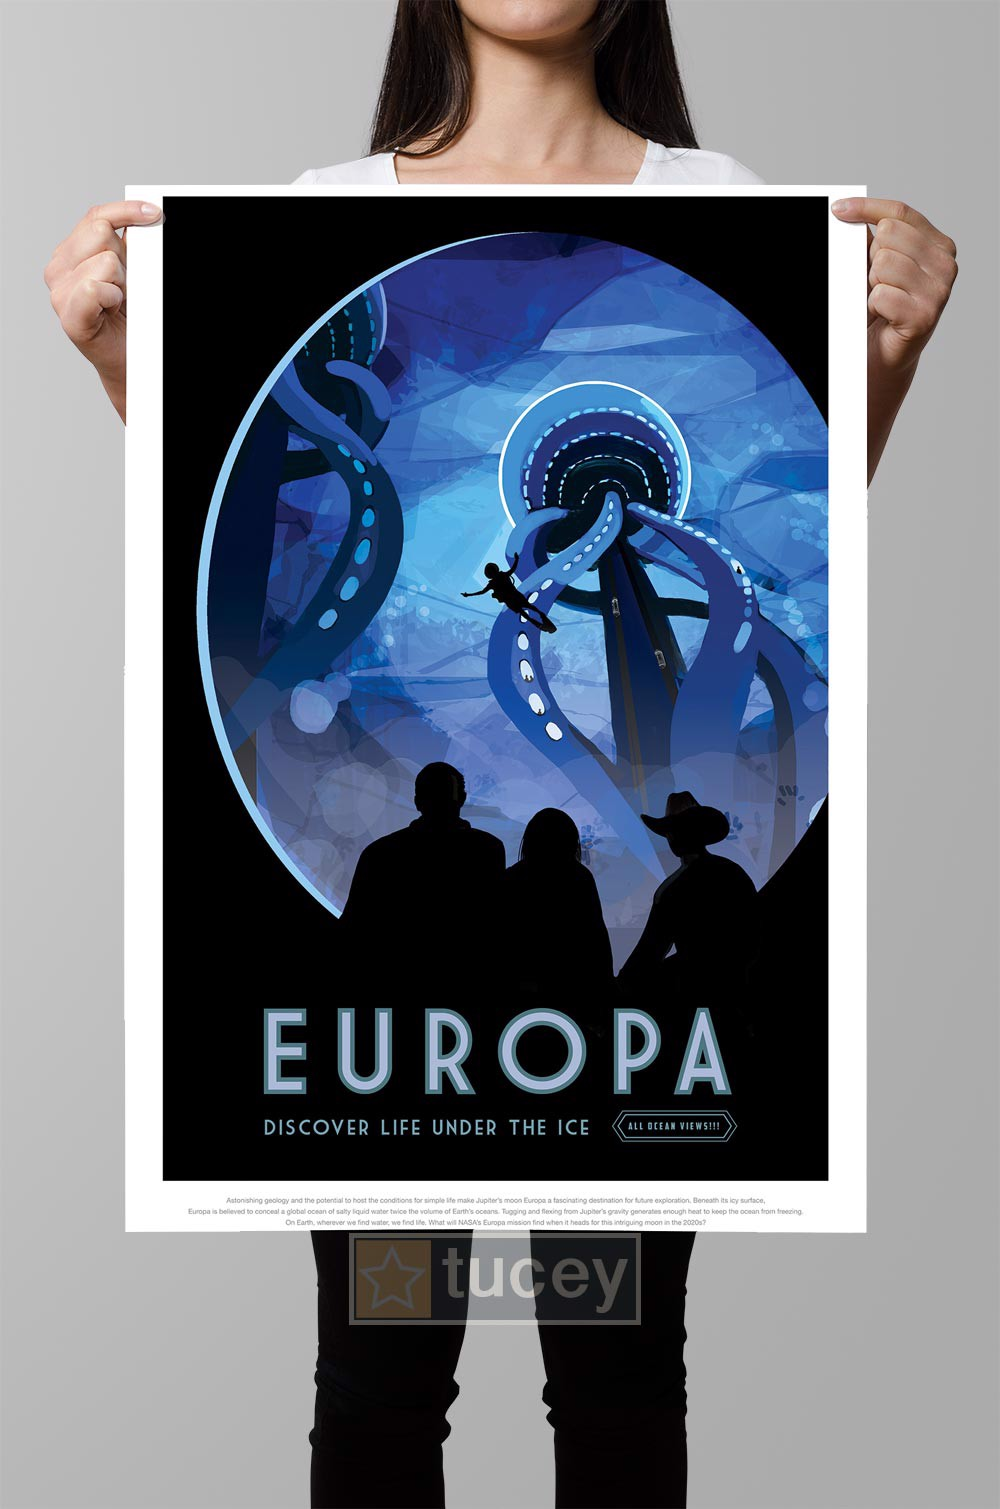 europa space